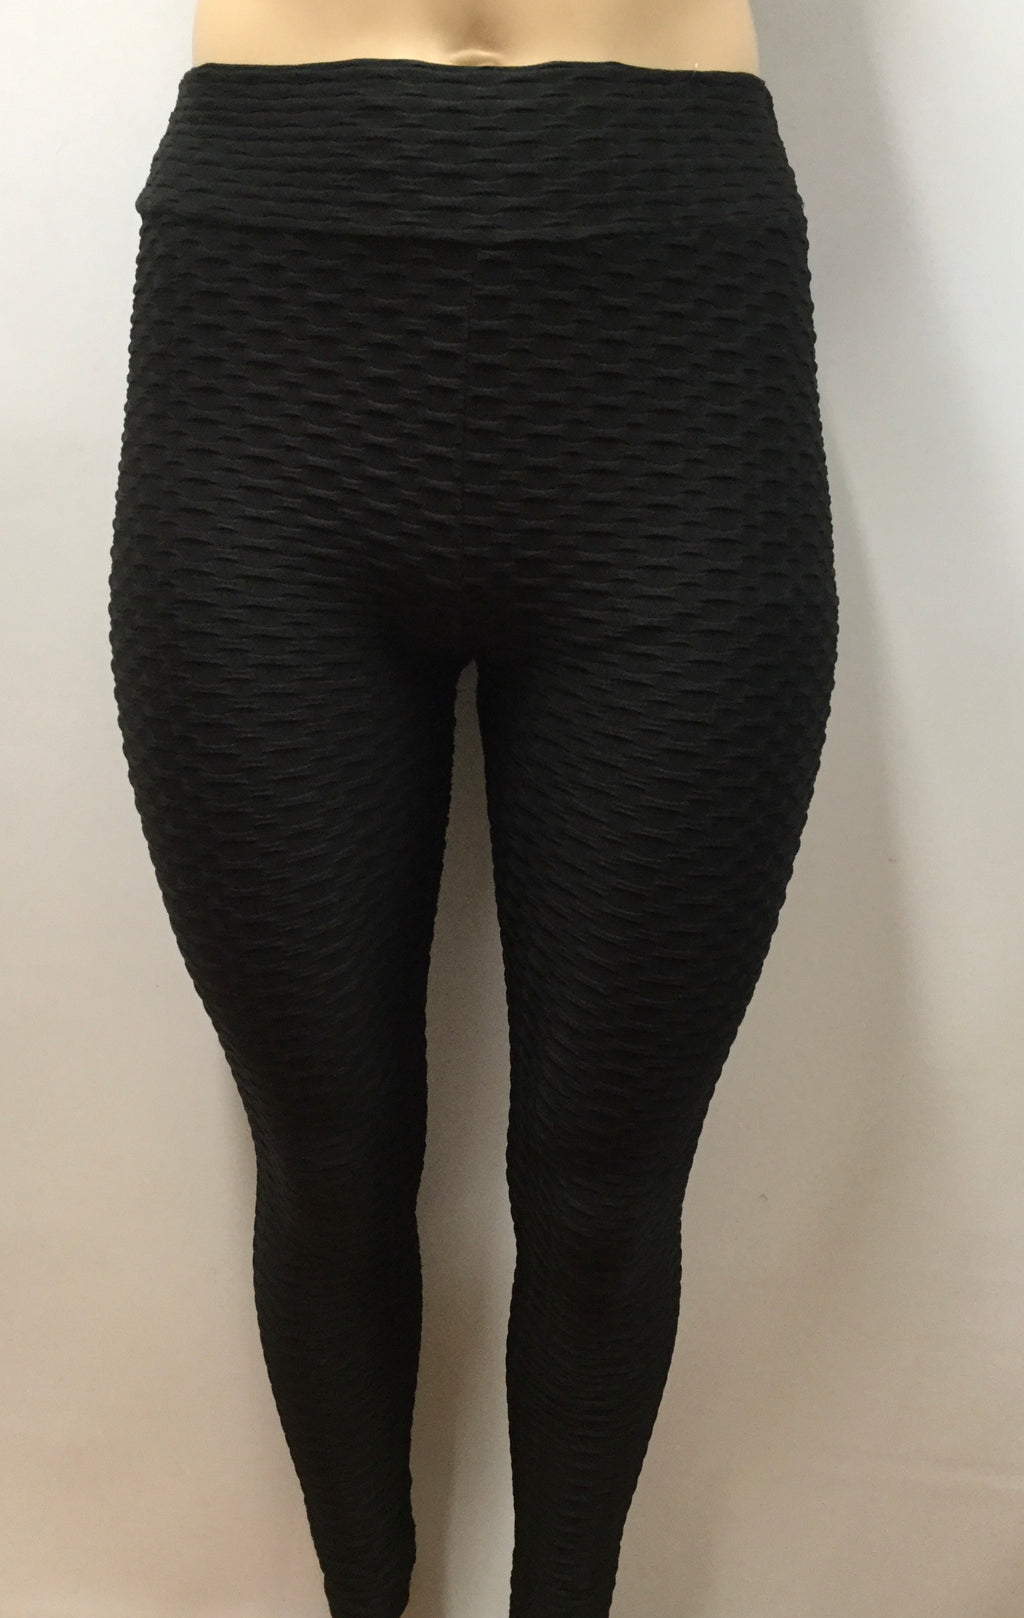 Extra Plus Textured Honeycomb Black Shaping Leggings